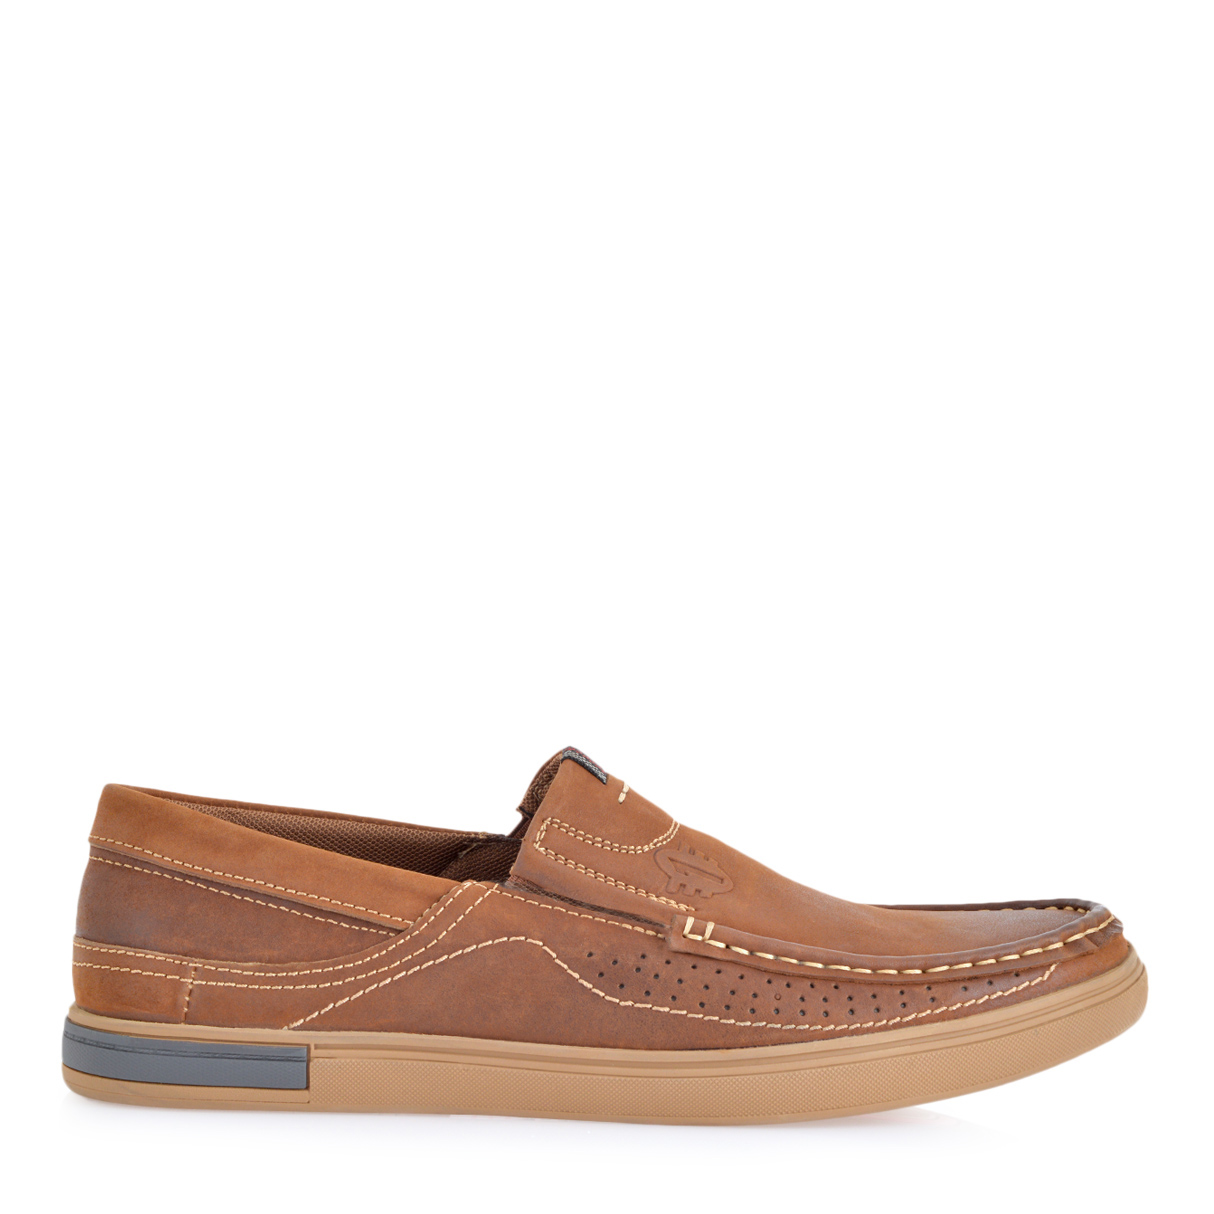 BOAT SHOES σχέδιο: G57006021 outlet   ανδρικα   boat shoes